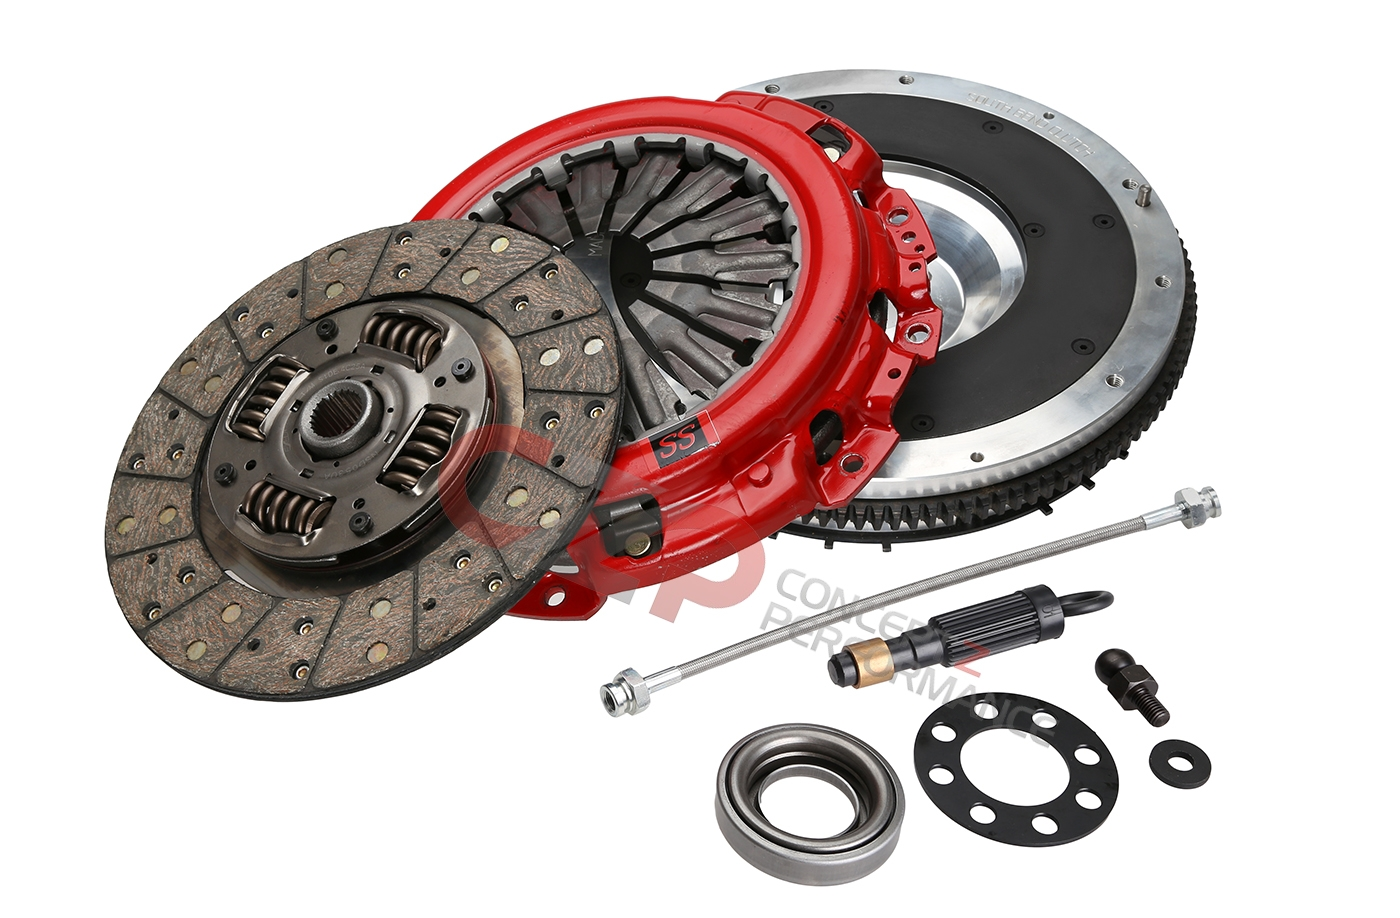 Clutch nissan user manuals nissan sentra clutch replacement visual array south bend clutch southbend clutch flywheel combo w bonus vq35de rh conceptzperformance com fandeluxe Image collections